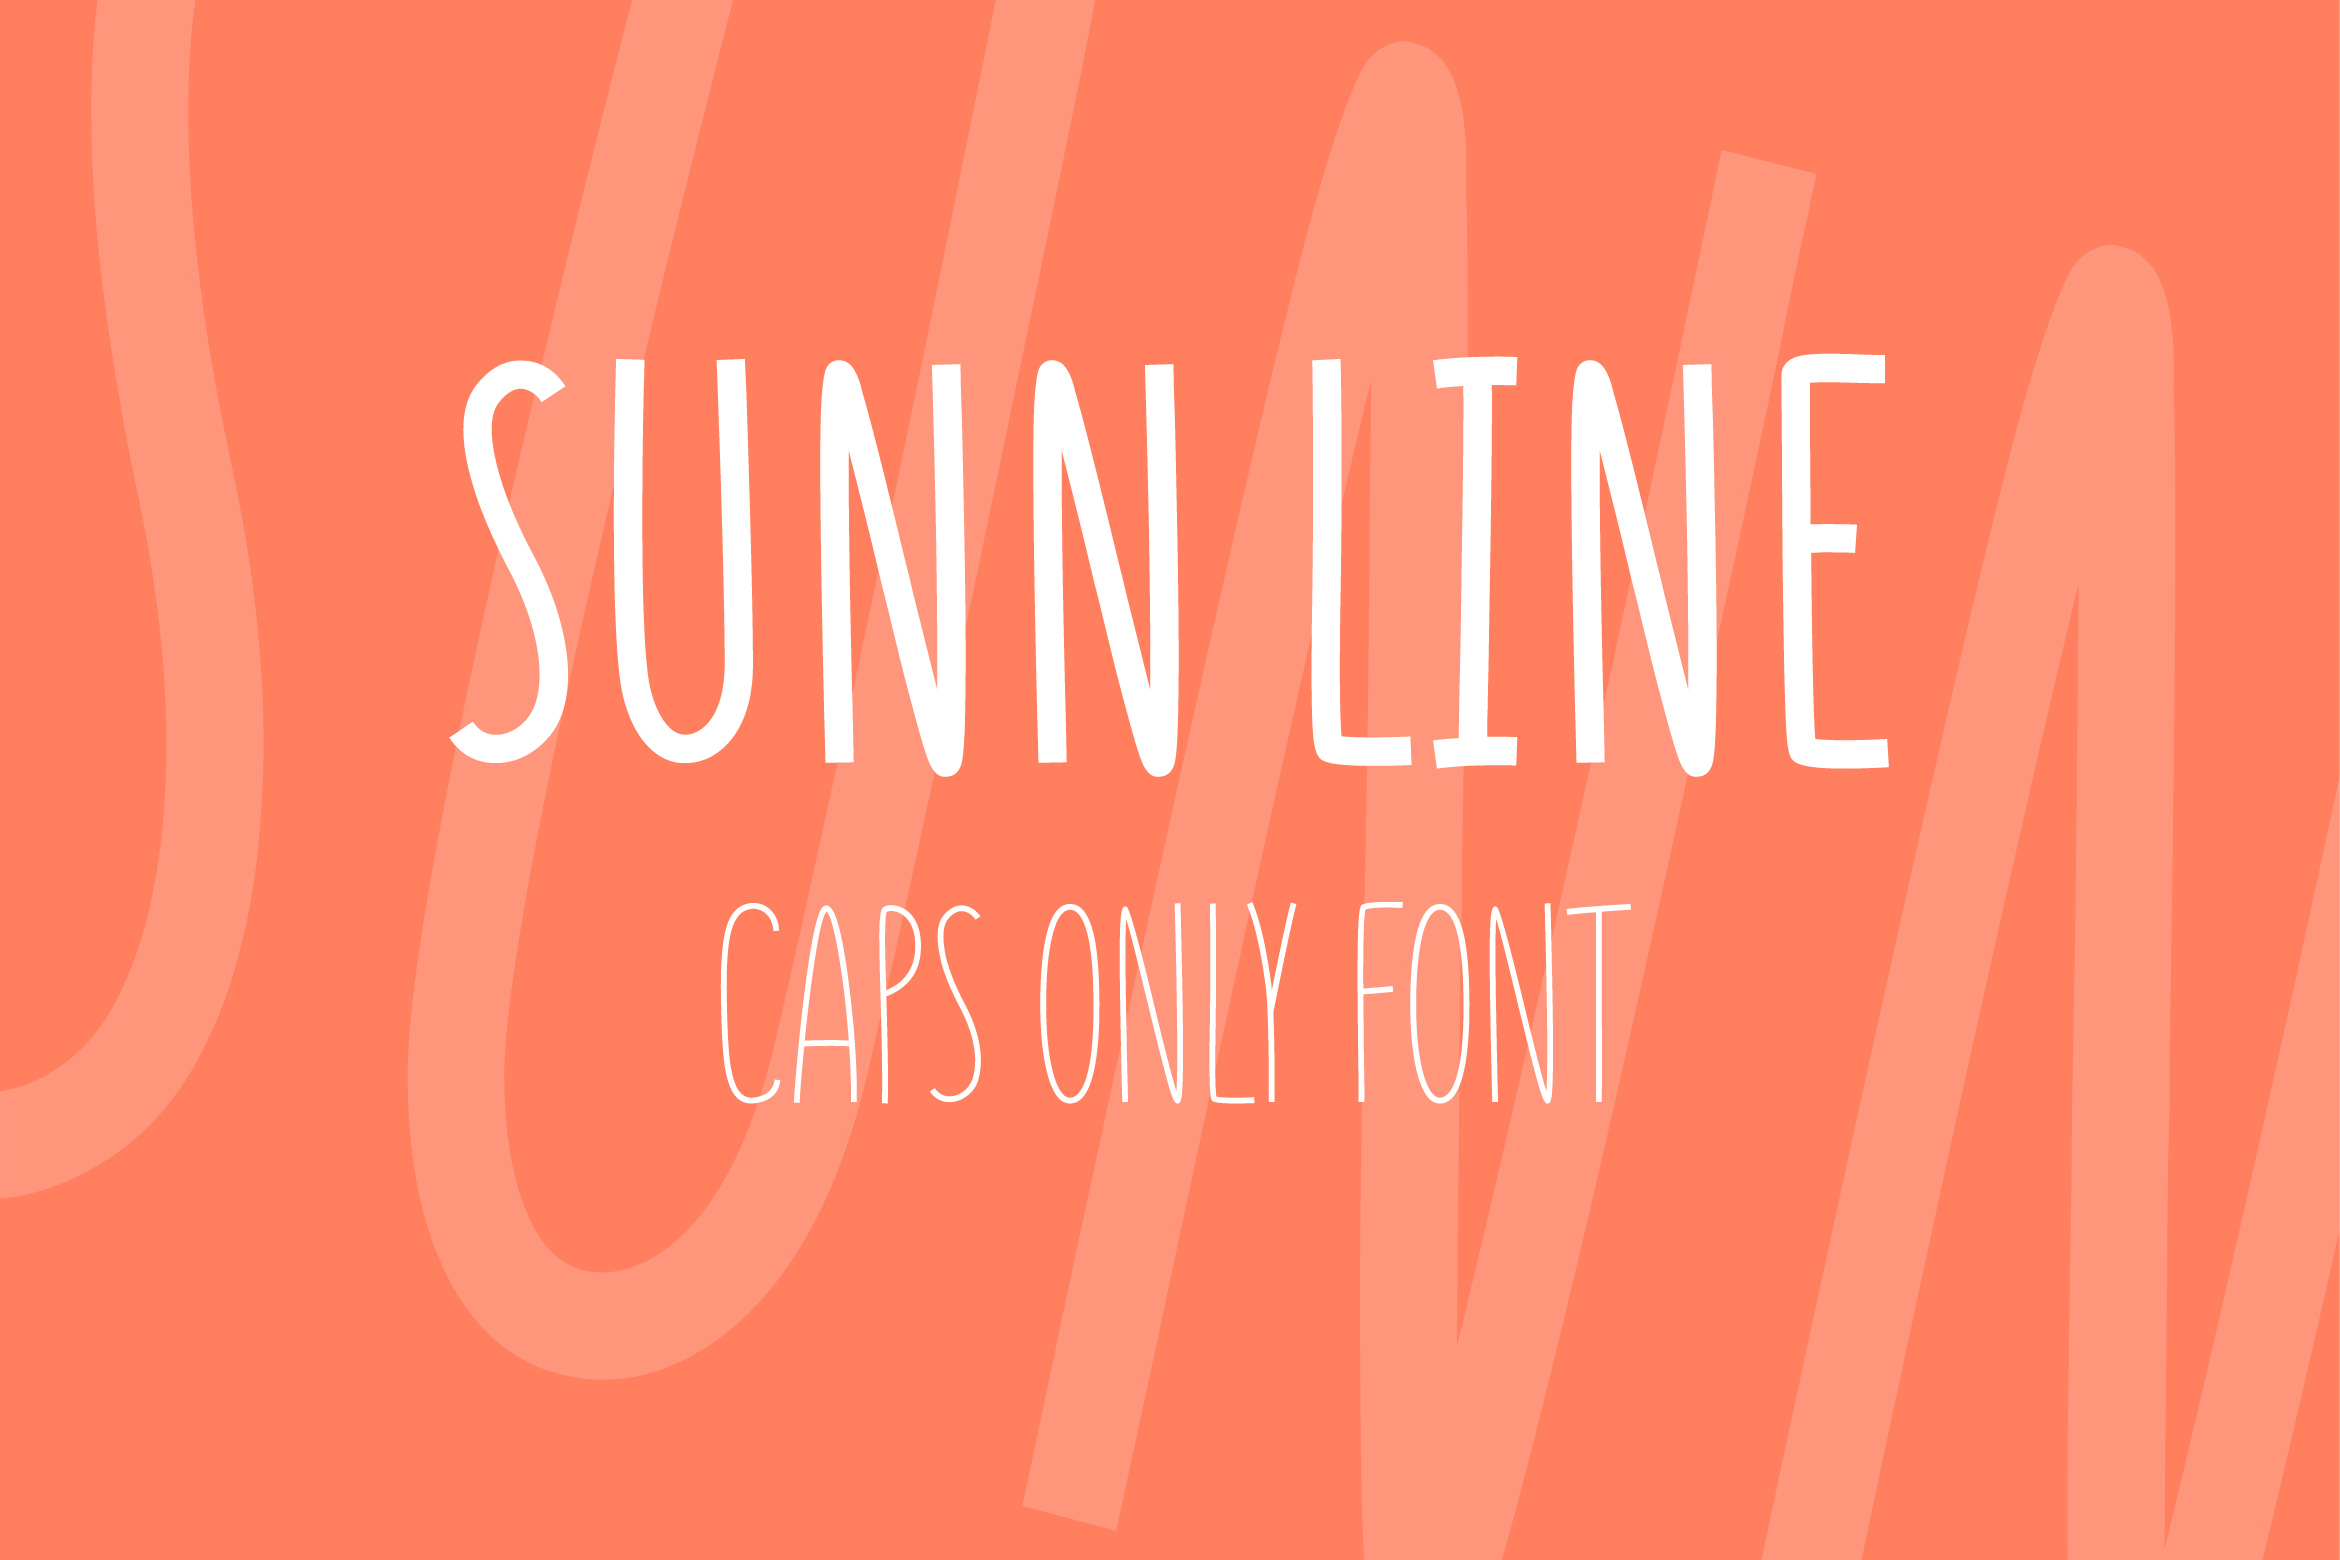 SUNN Line Caps Only Font example image 1